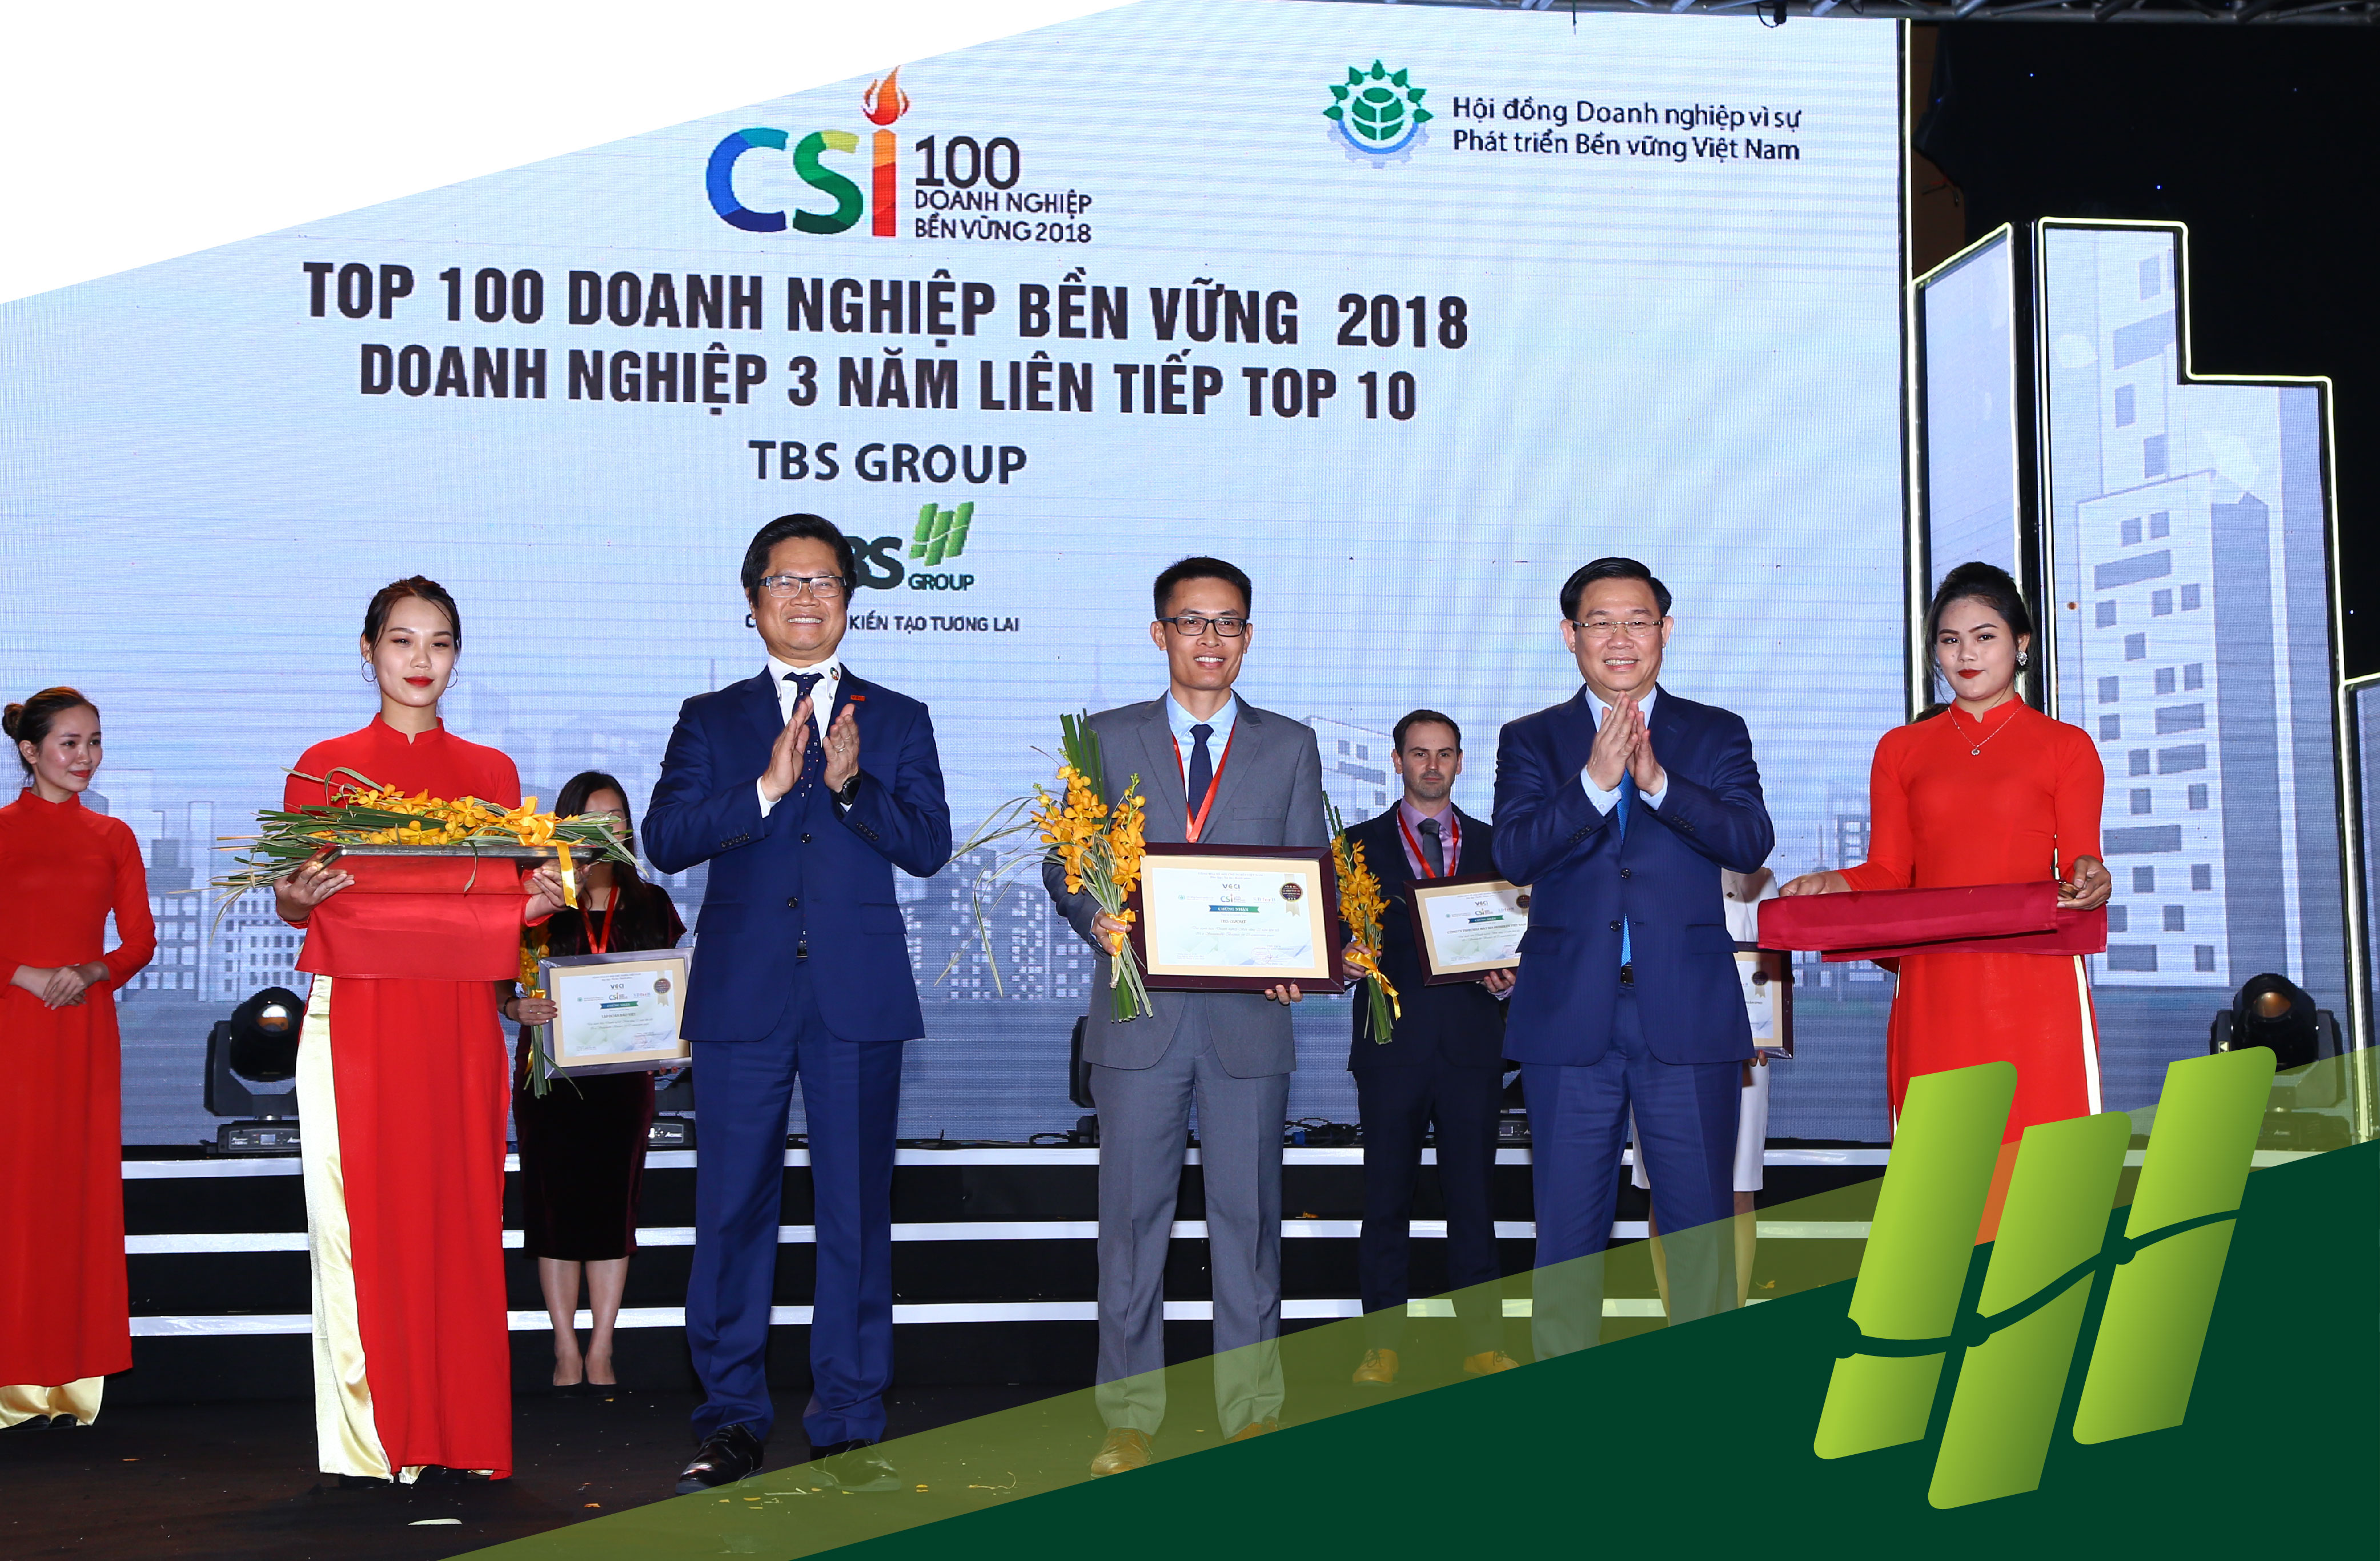 TBS GROUP – Three consecutive years of TOP 10 Vietnam Sustainable Enterprise